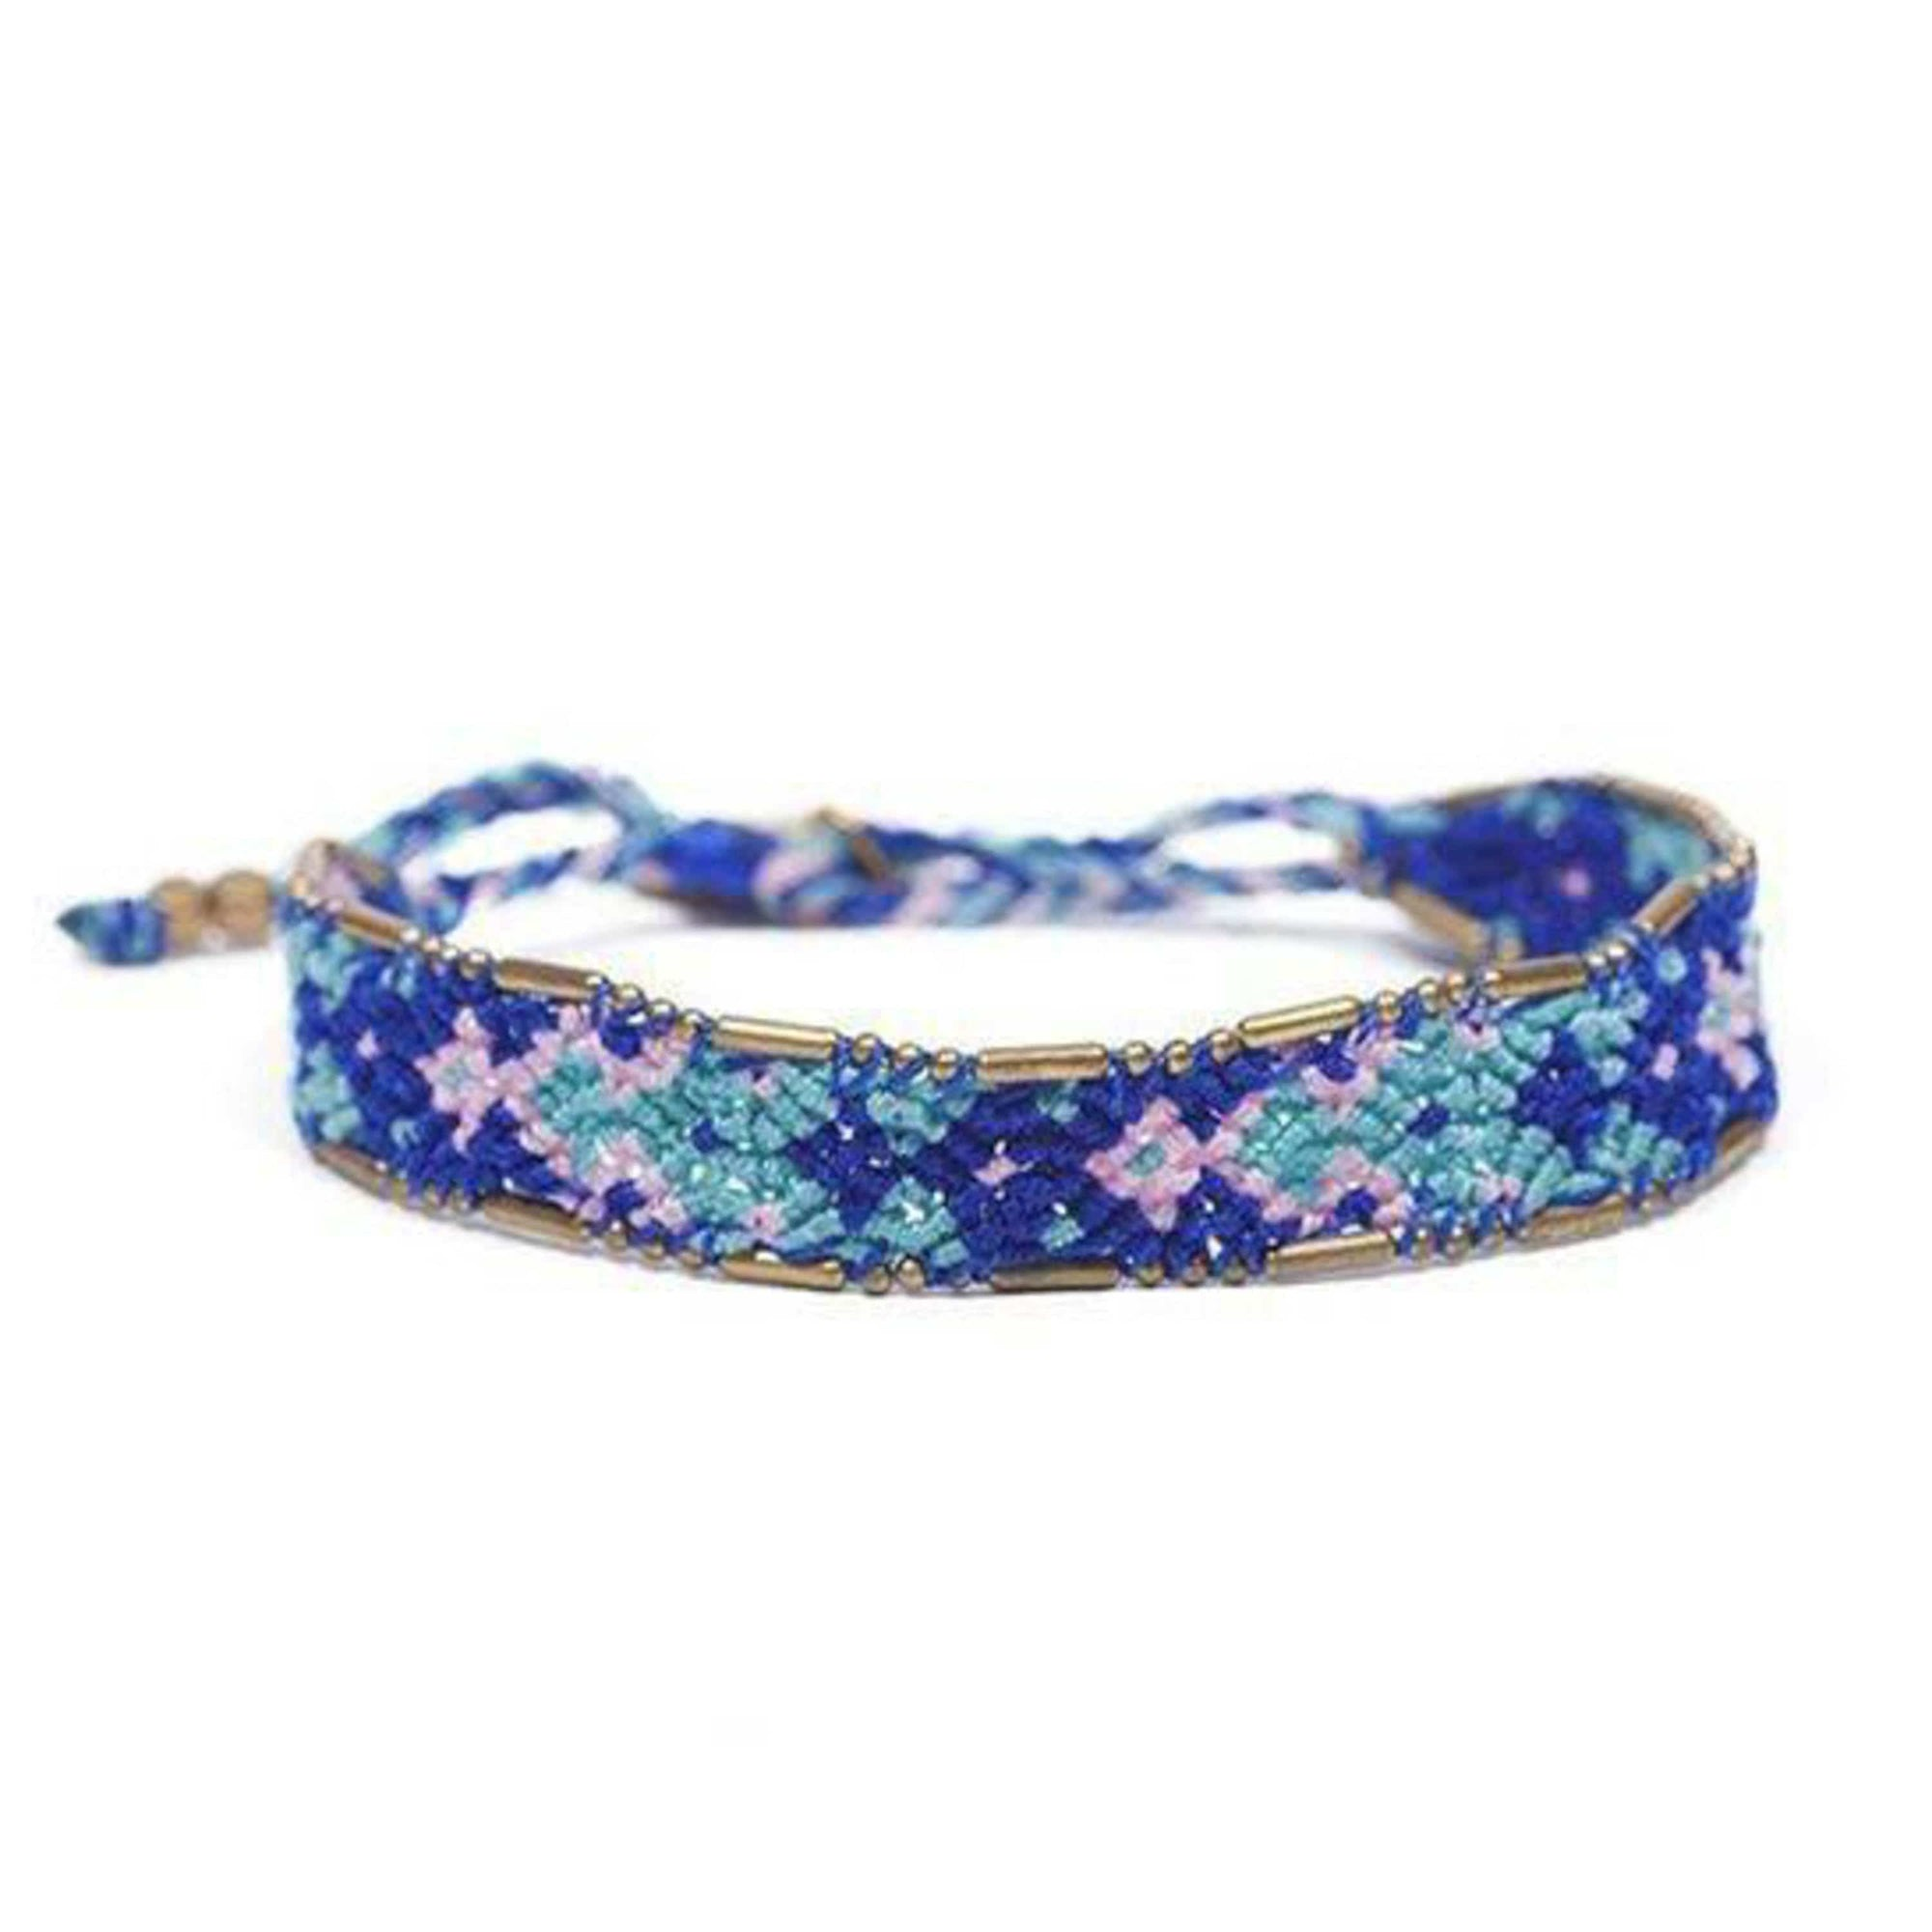 Bali Friendship Bracelet - Blue